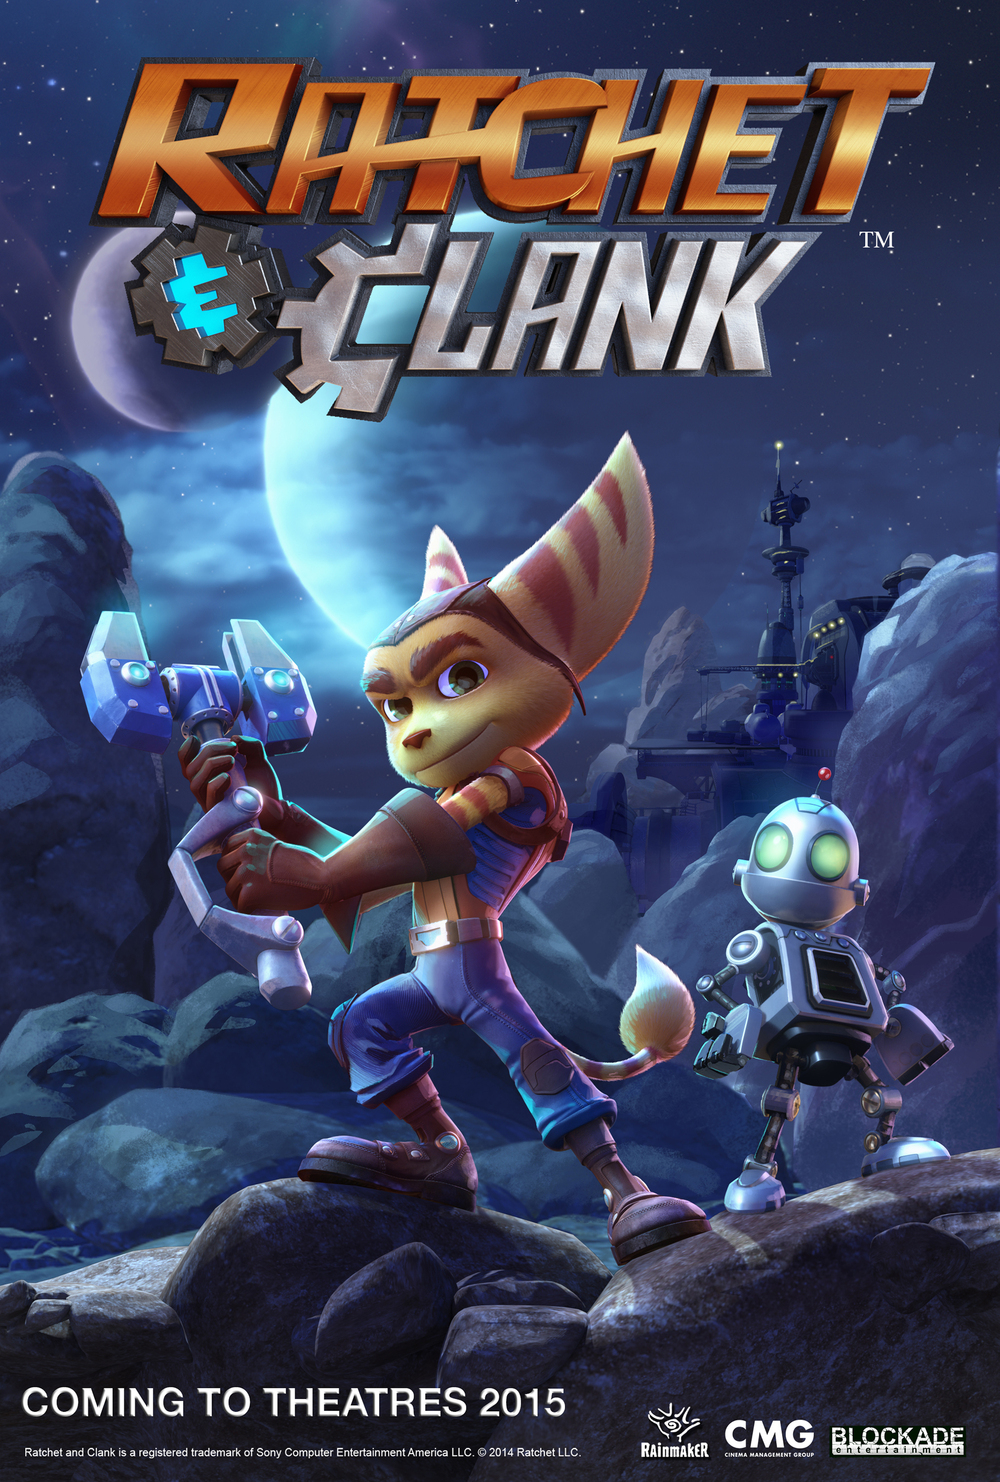 Ratchet and clank release date in Melbourne